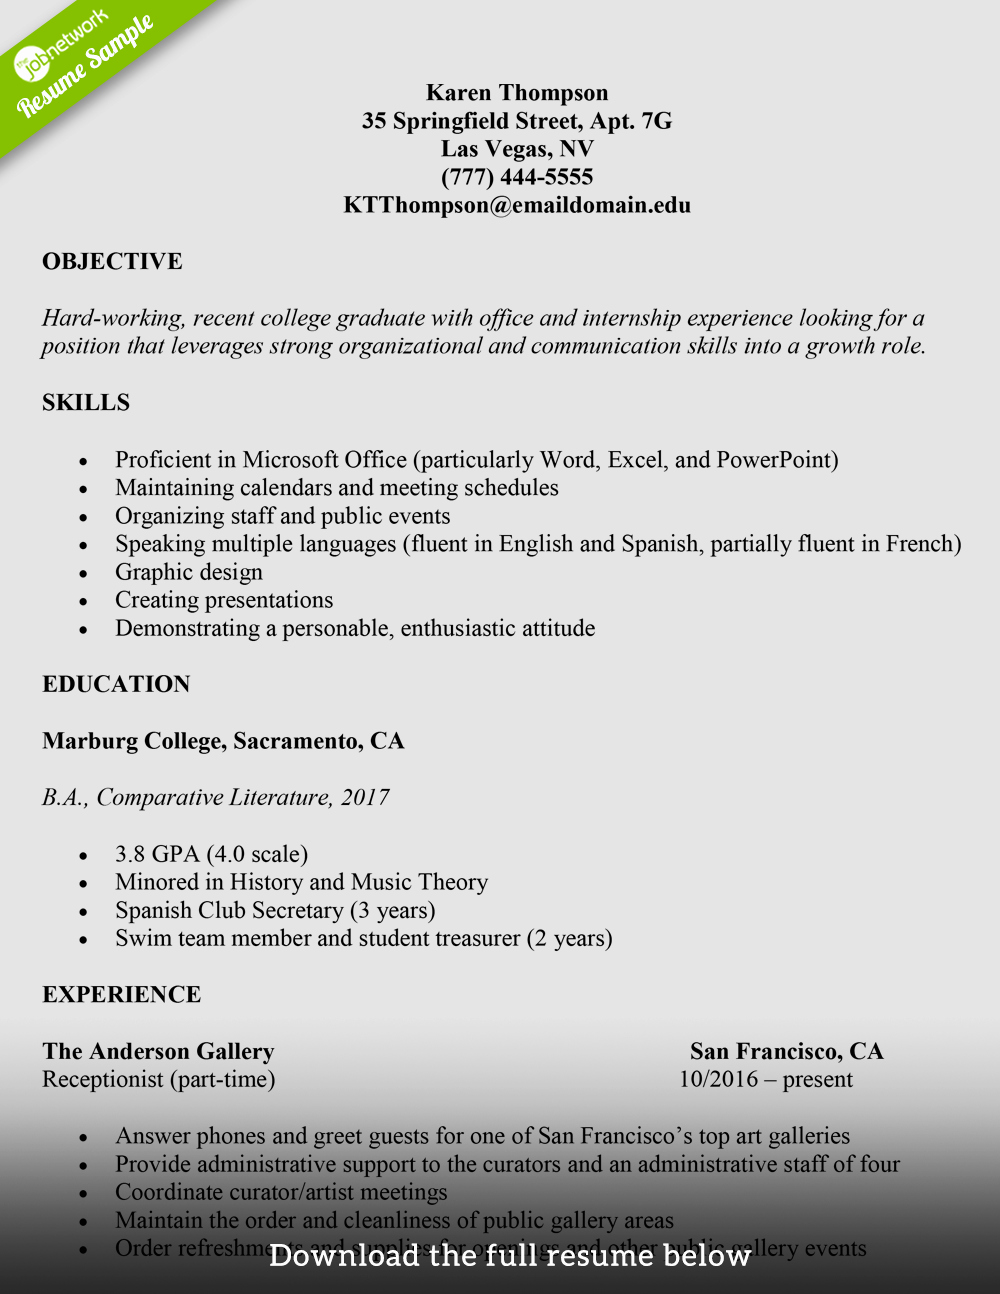 College Graduate Resume Template New How to Write A College Student Resume with Examples